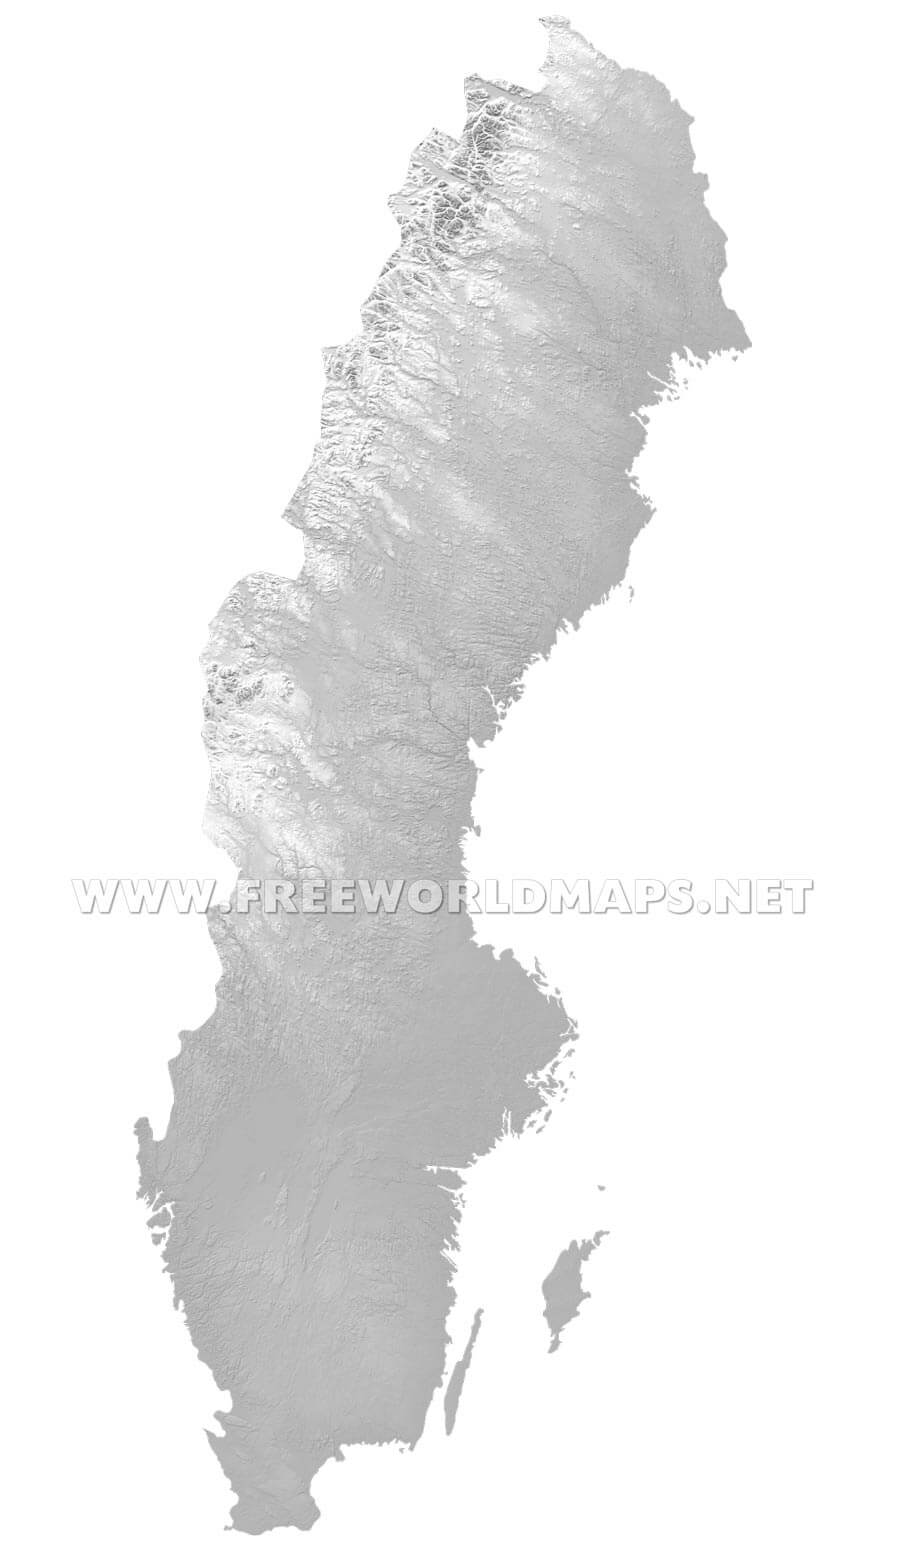 Sweden Physical Map - Sweden relief map